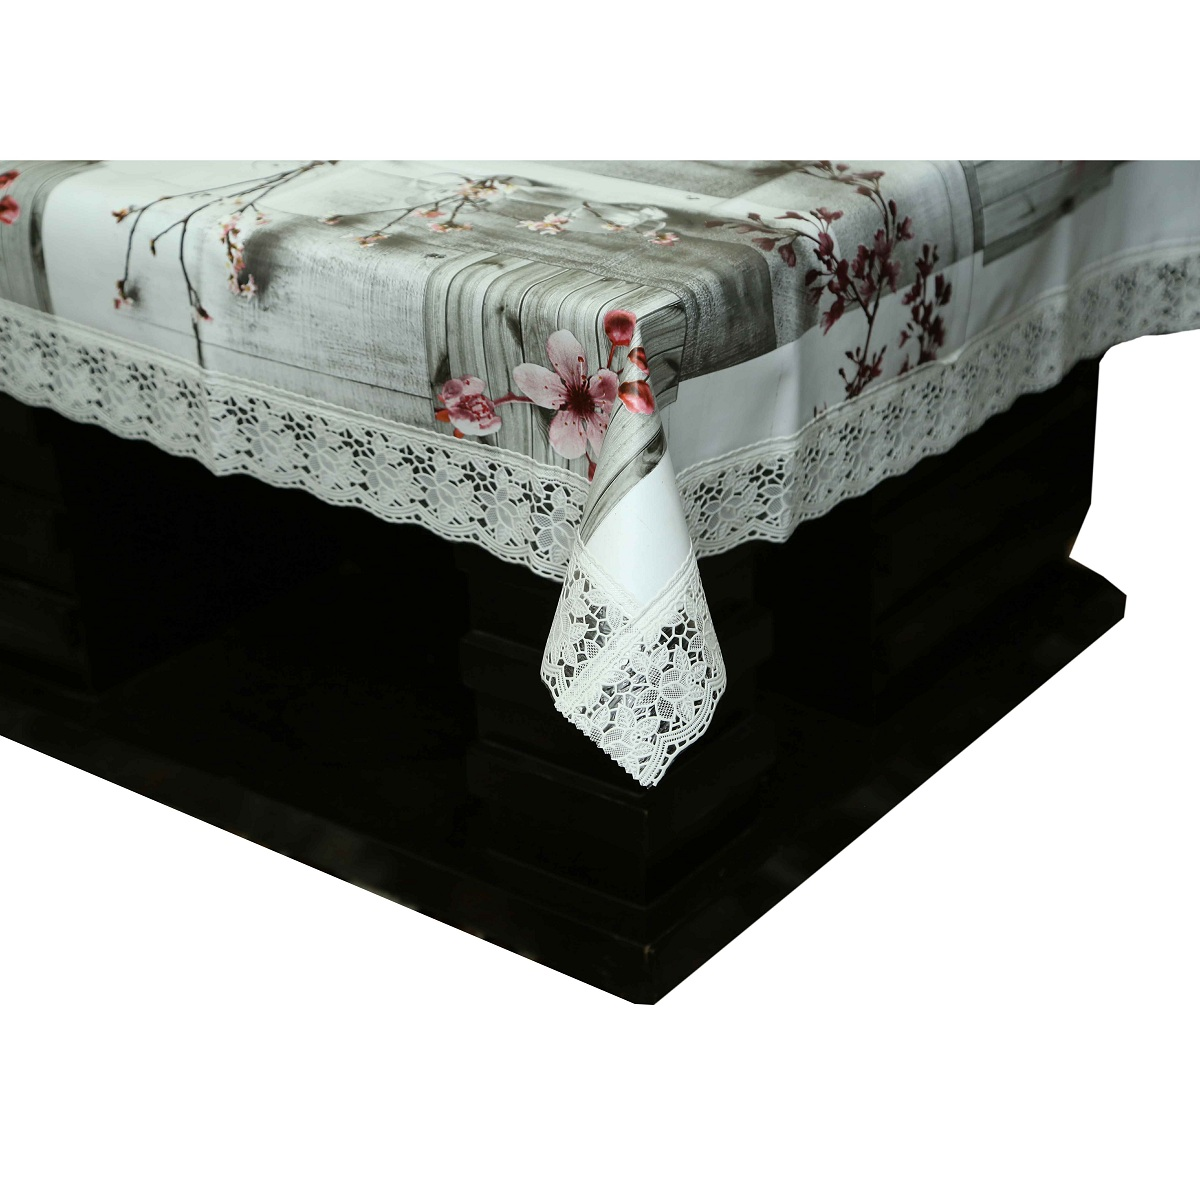 Picture of: Kuber Industries Grey Floral Design Heavy Waterproof Dining Table Cover 6 Seater 60 90 Inches